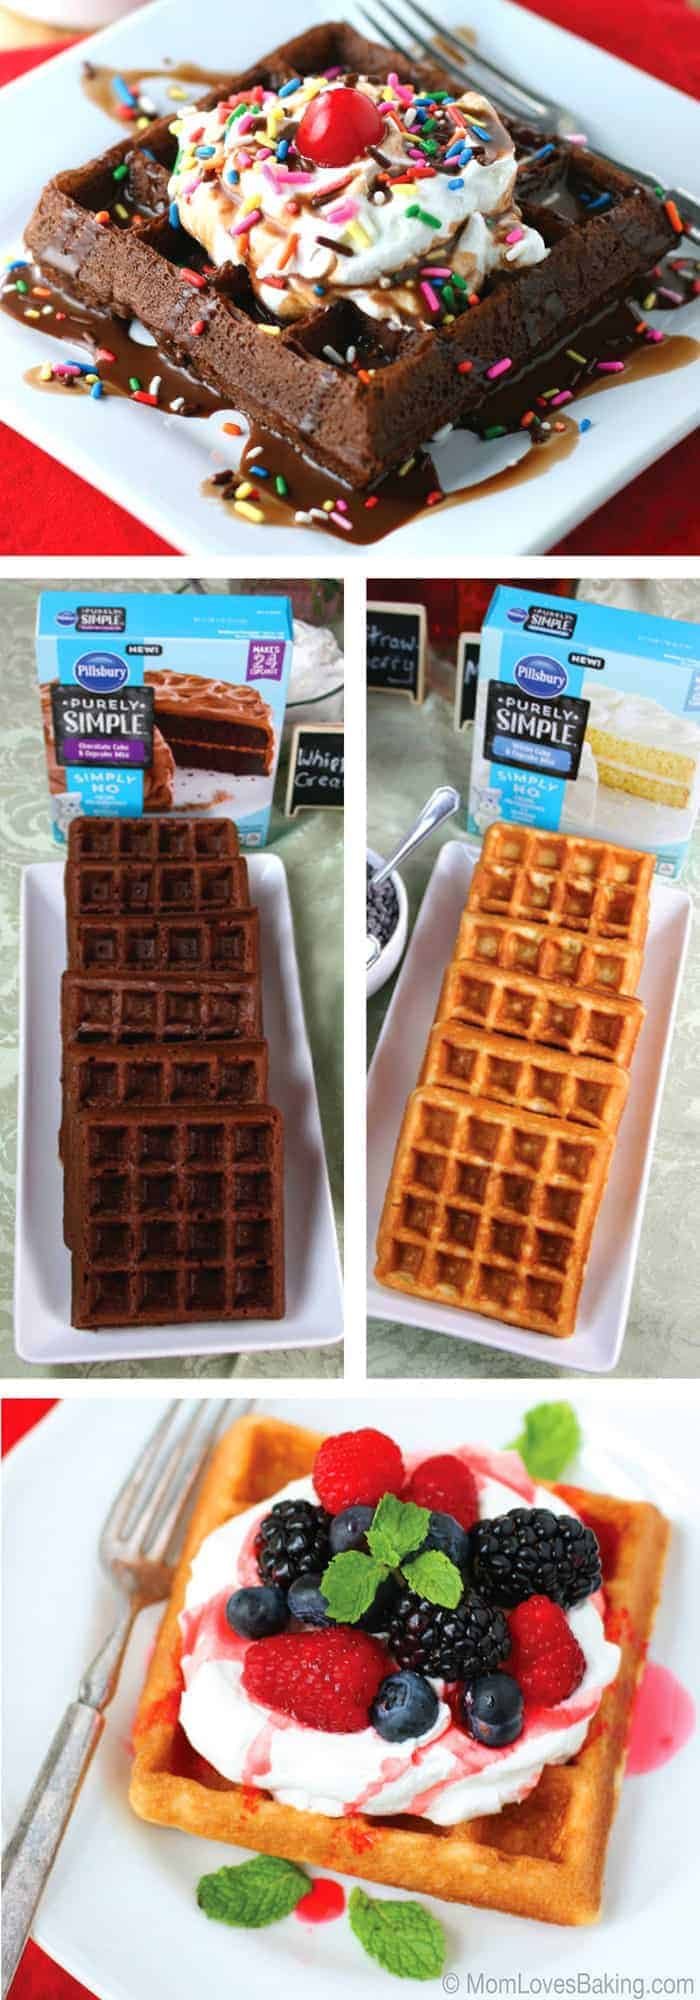 Cake-Mix-Waffles-Long